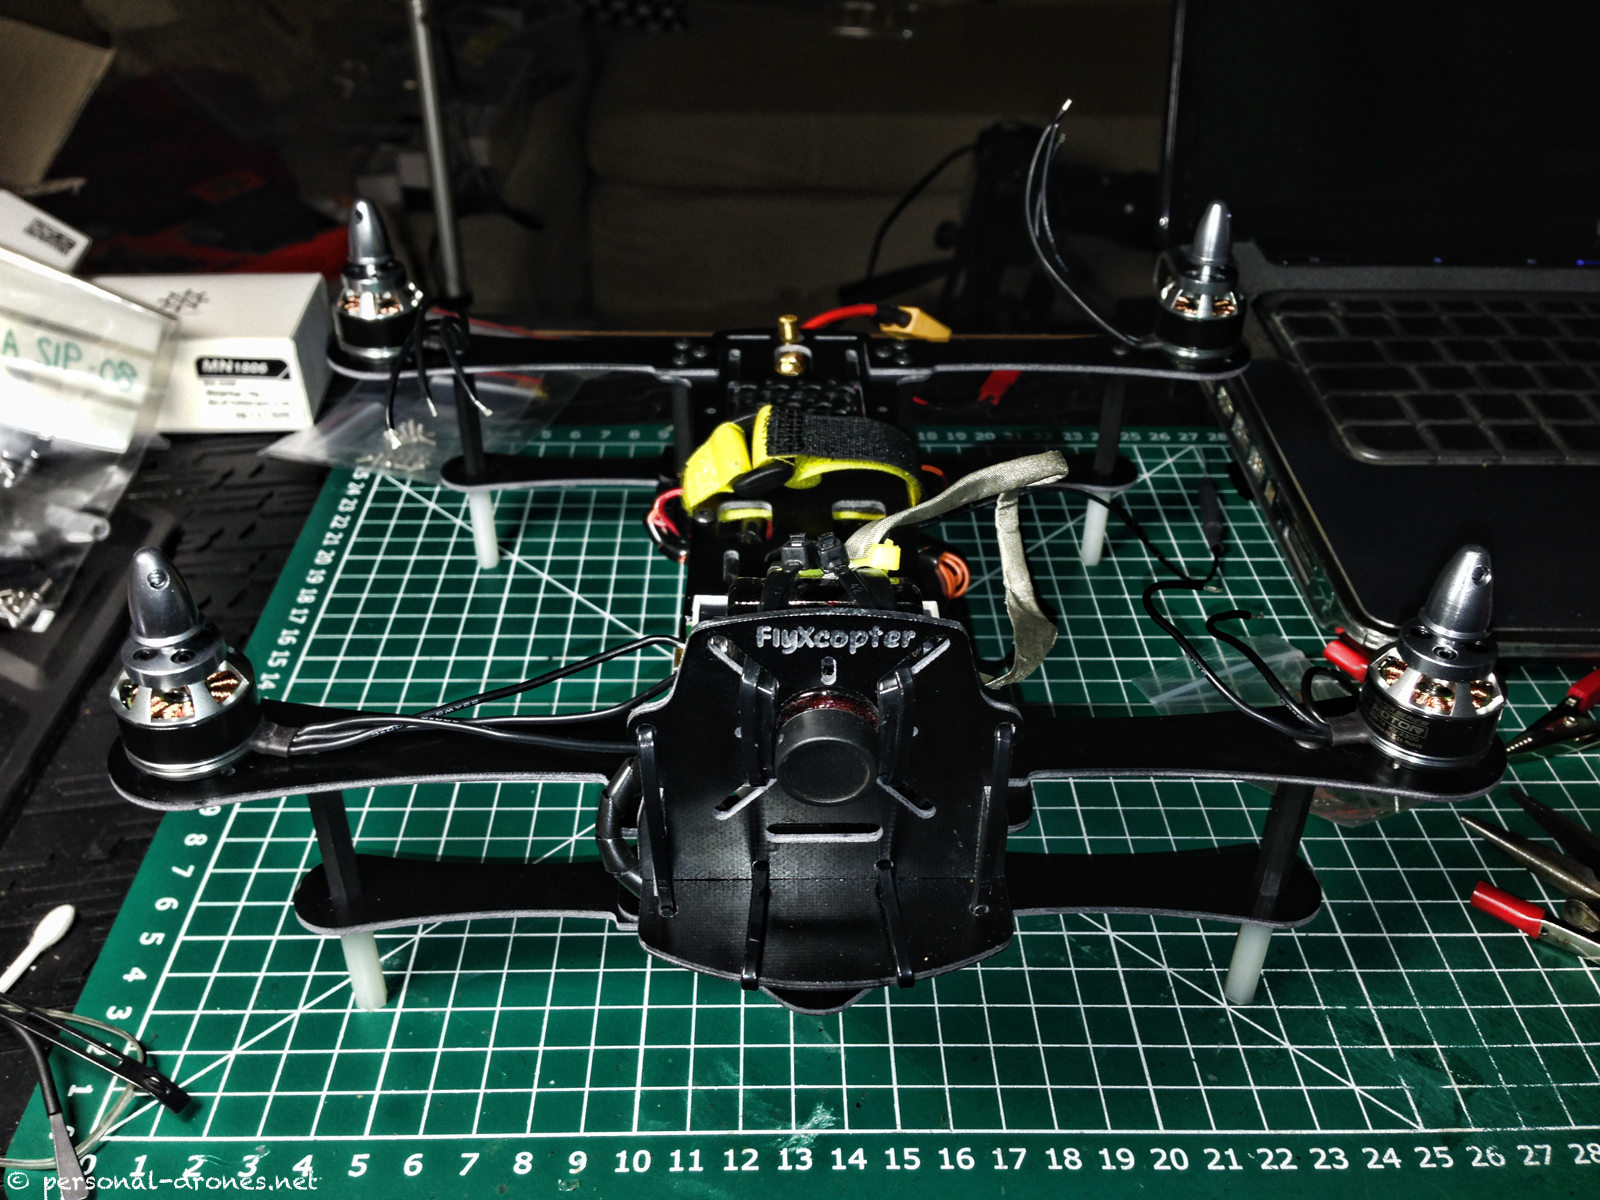 FlyXcopter FlyX-Mini. It's alive!